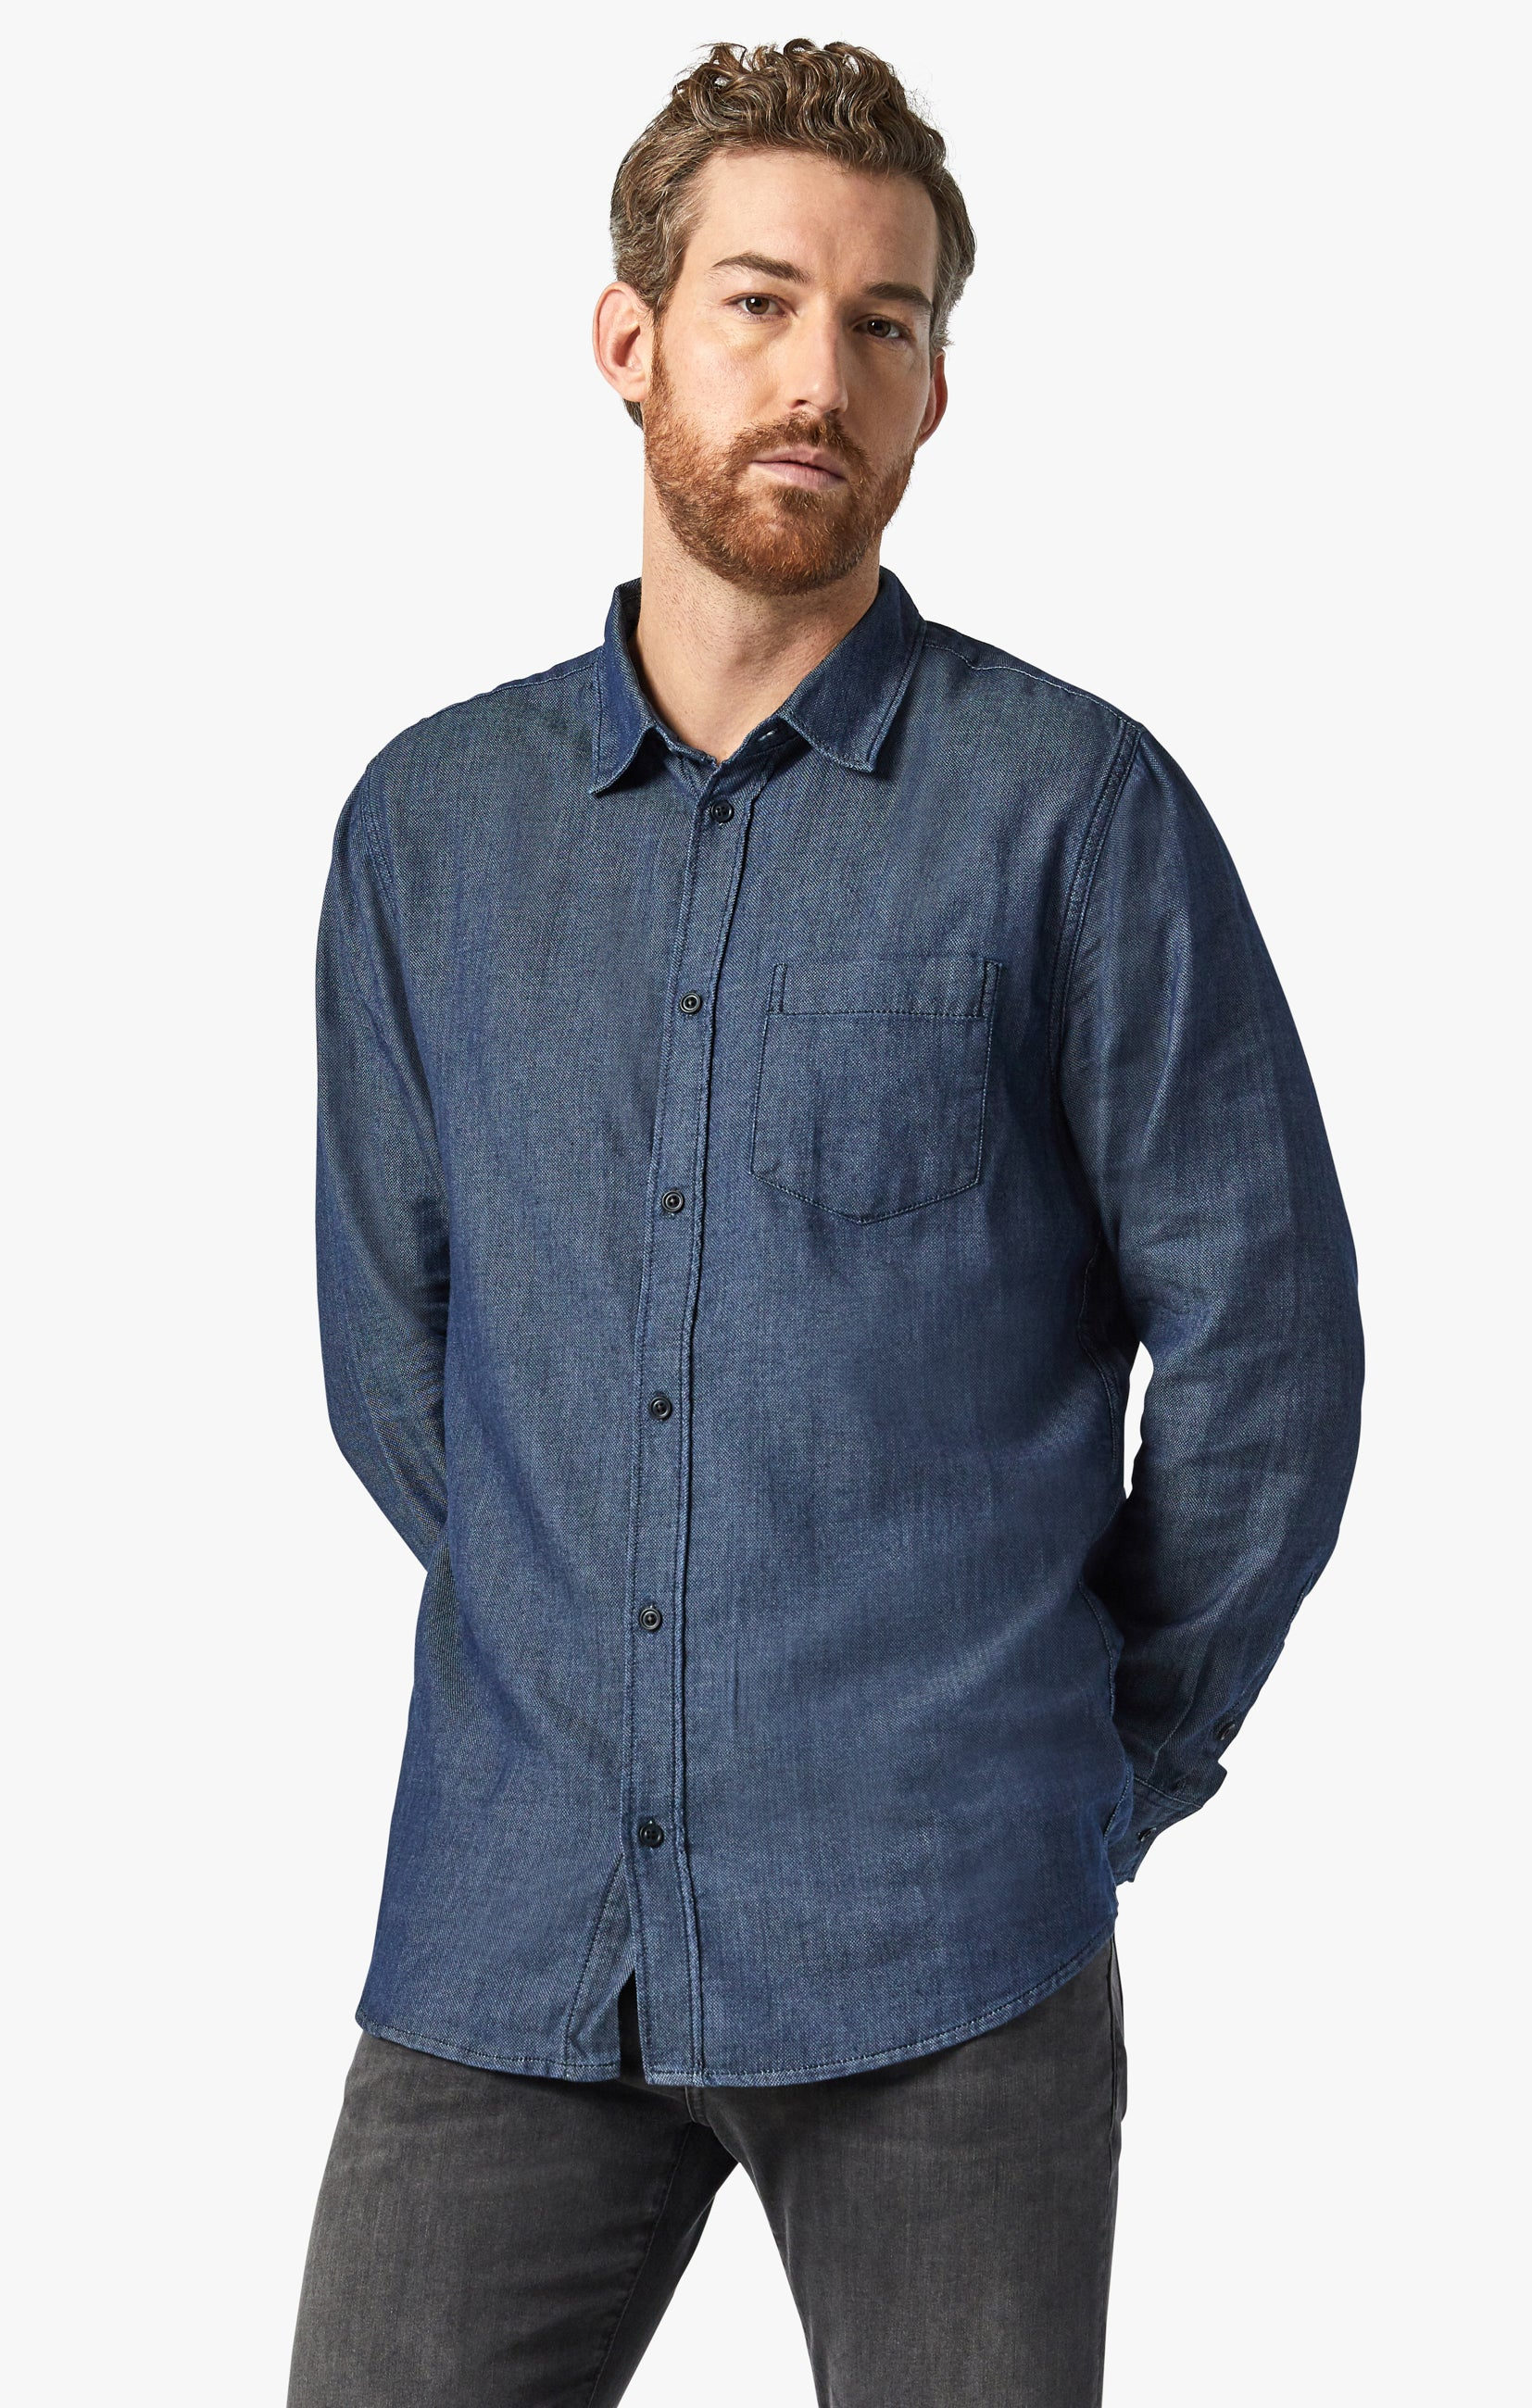 Chris Denim Shirt In Rinse Image 3